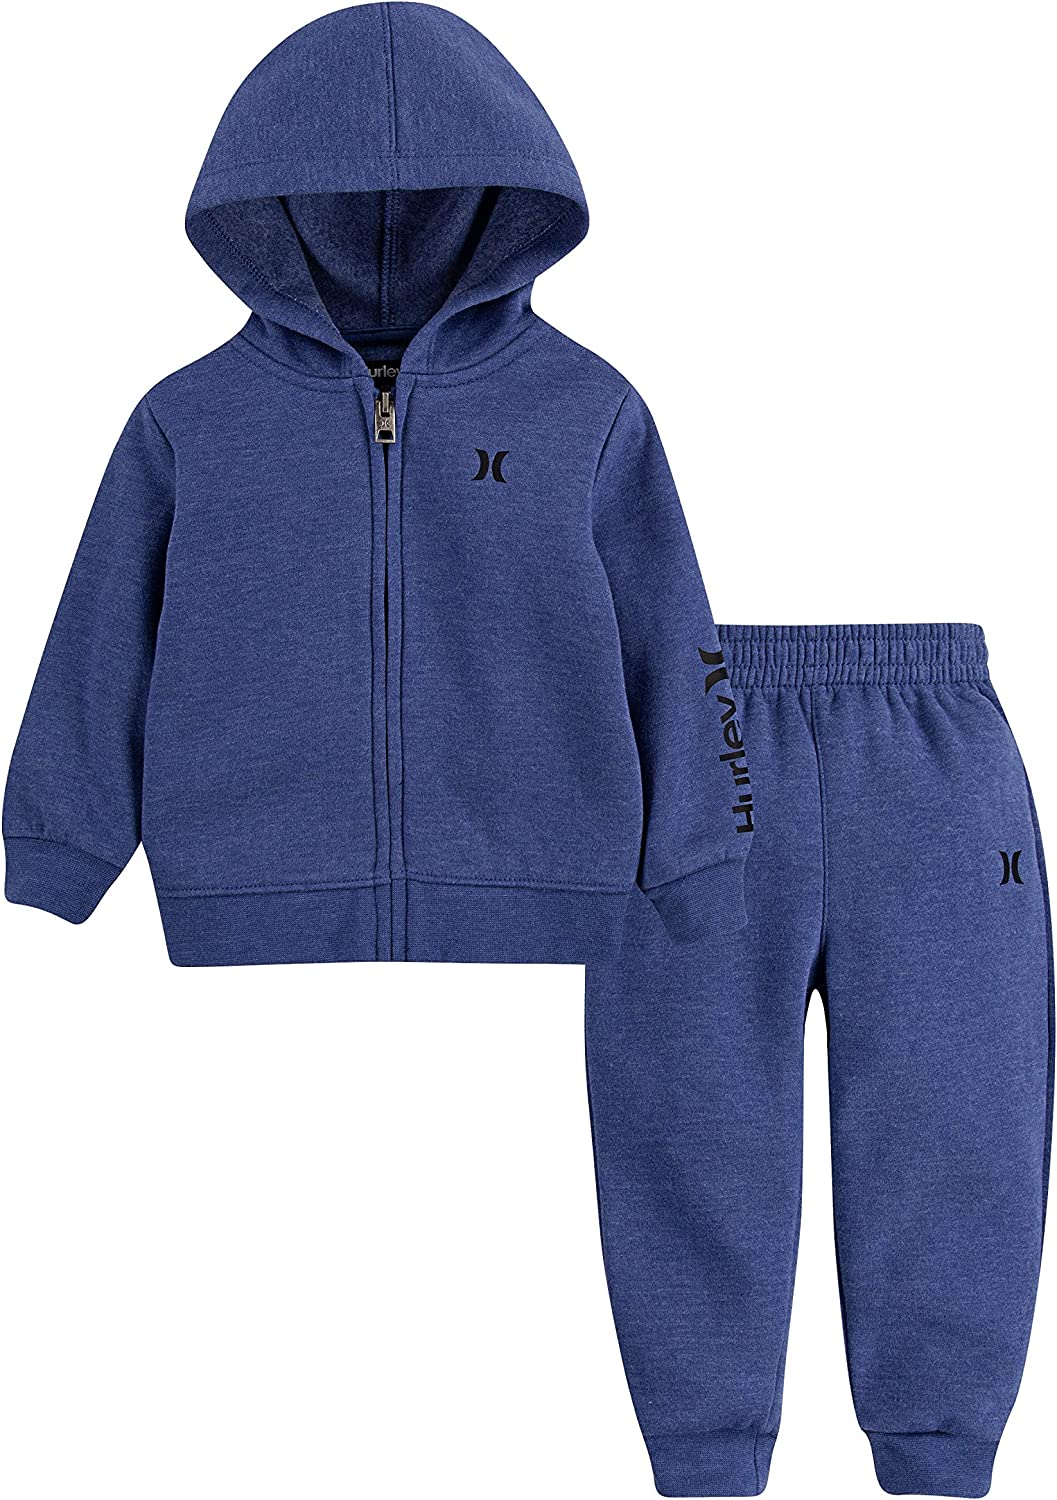 Hurley Baby Boys Hoodie and Joggers 2-Piece Outfit Set